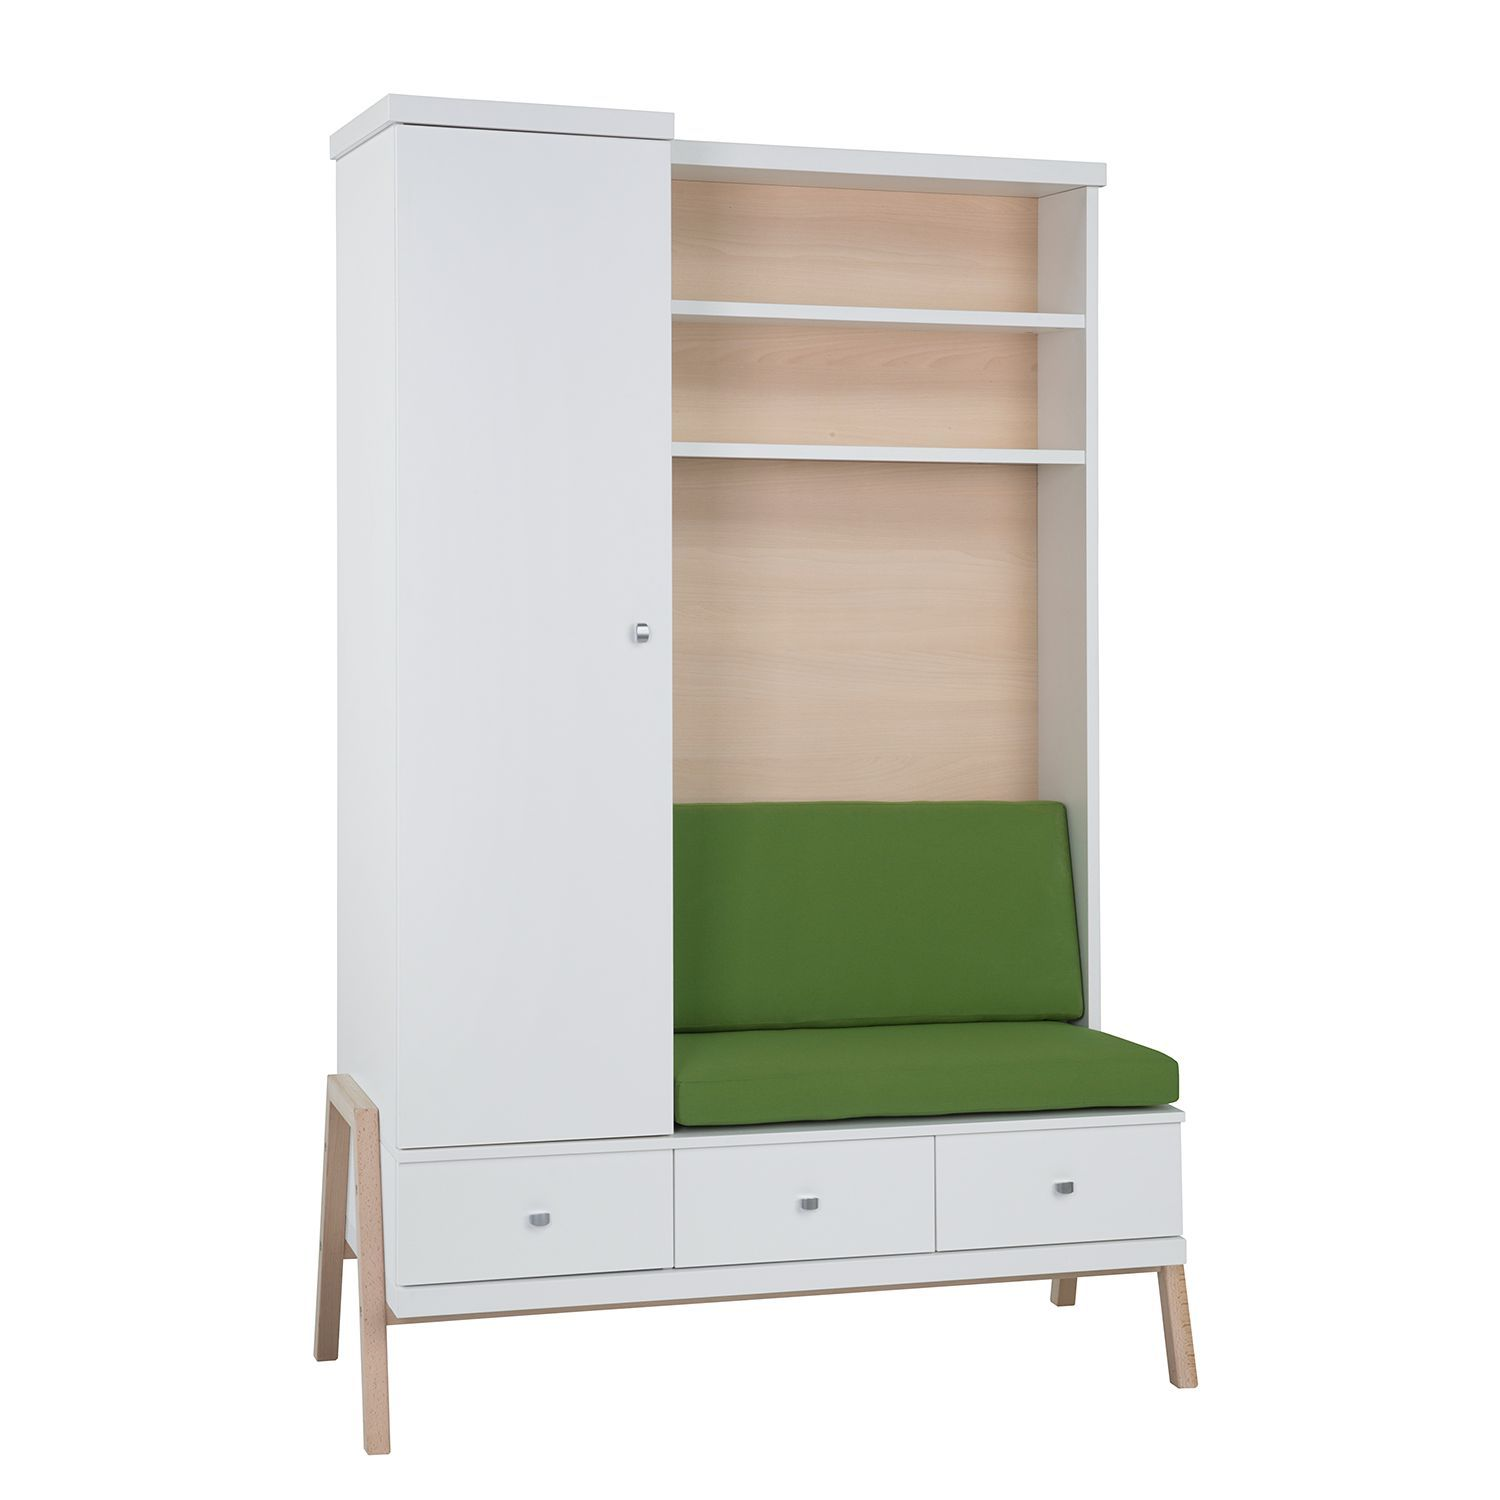 Schrank mit Wickelkommode Holly Wickelkommode